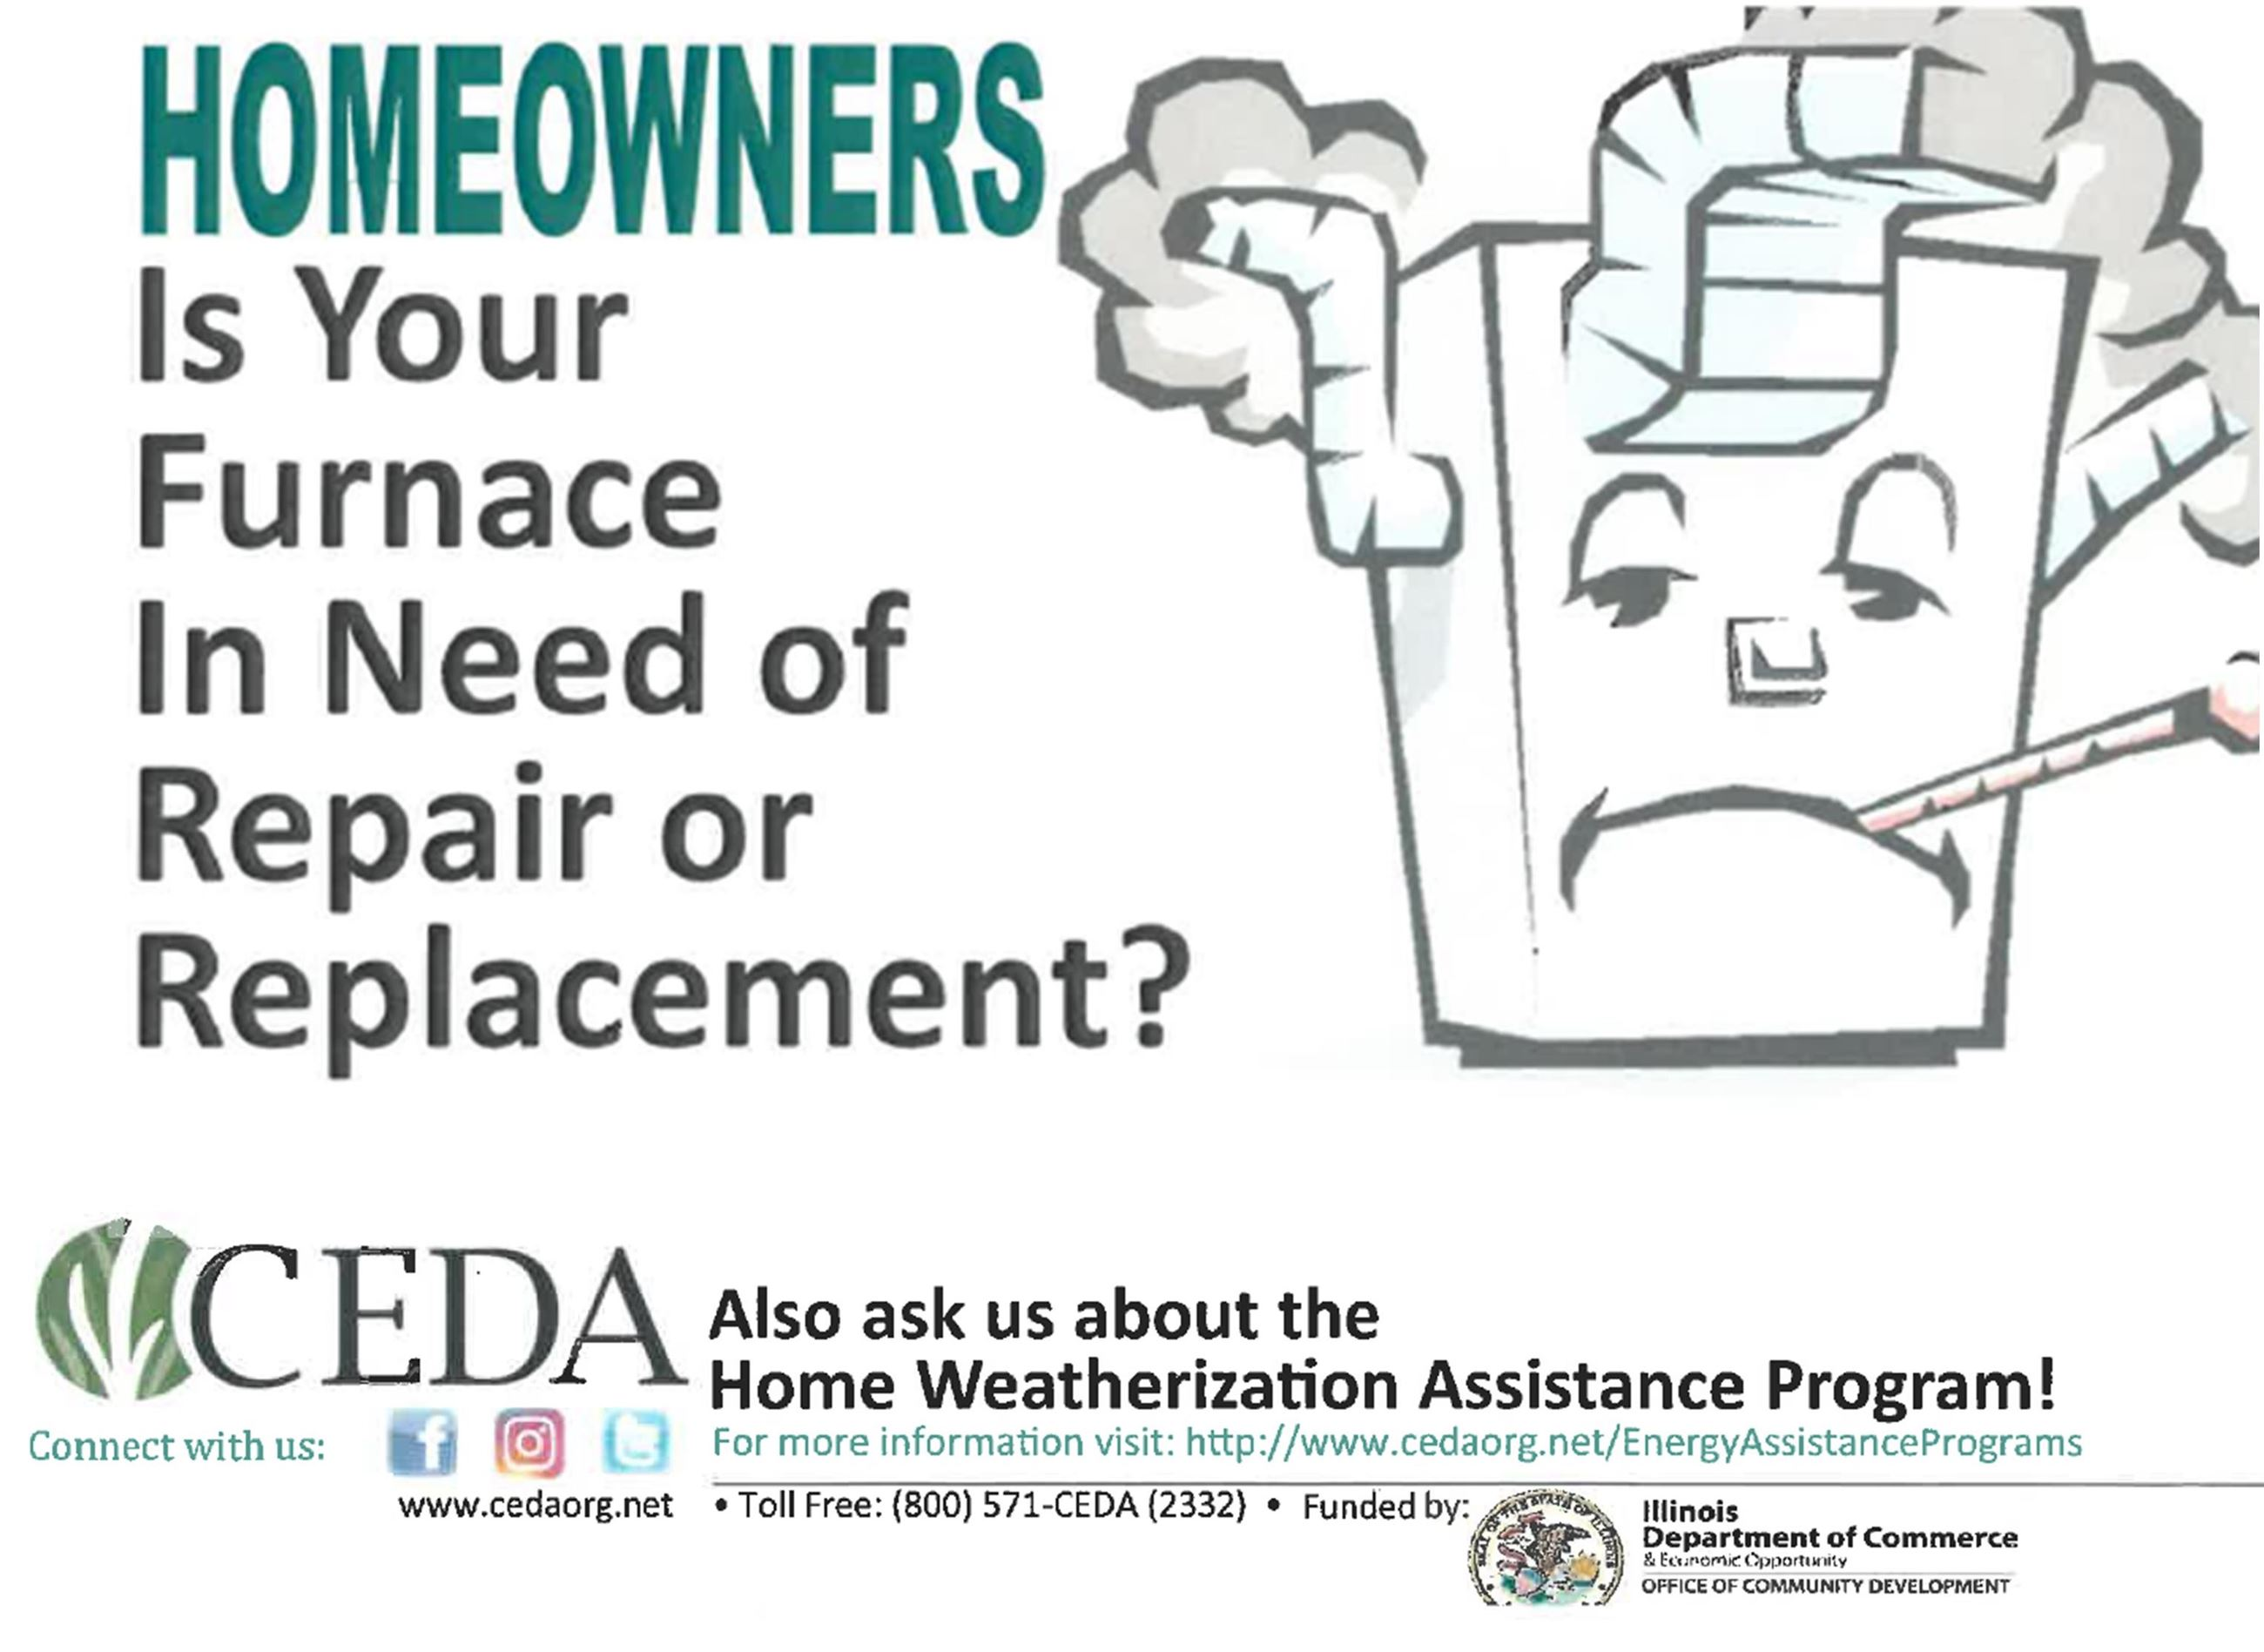 CEDA furnace assistance program